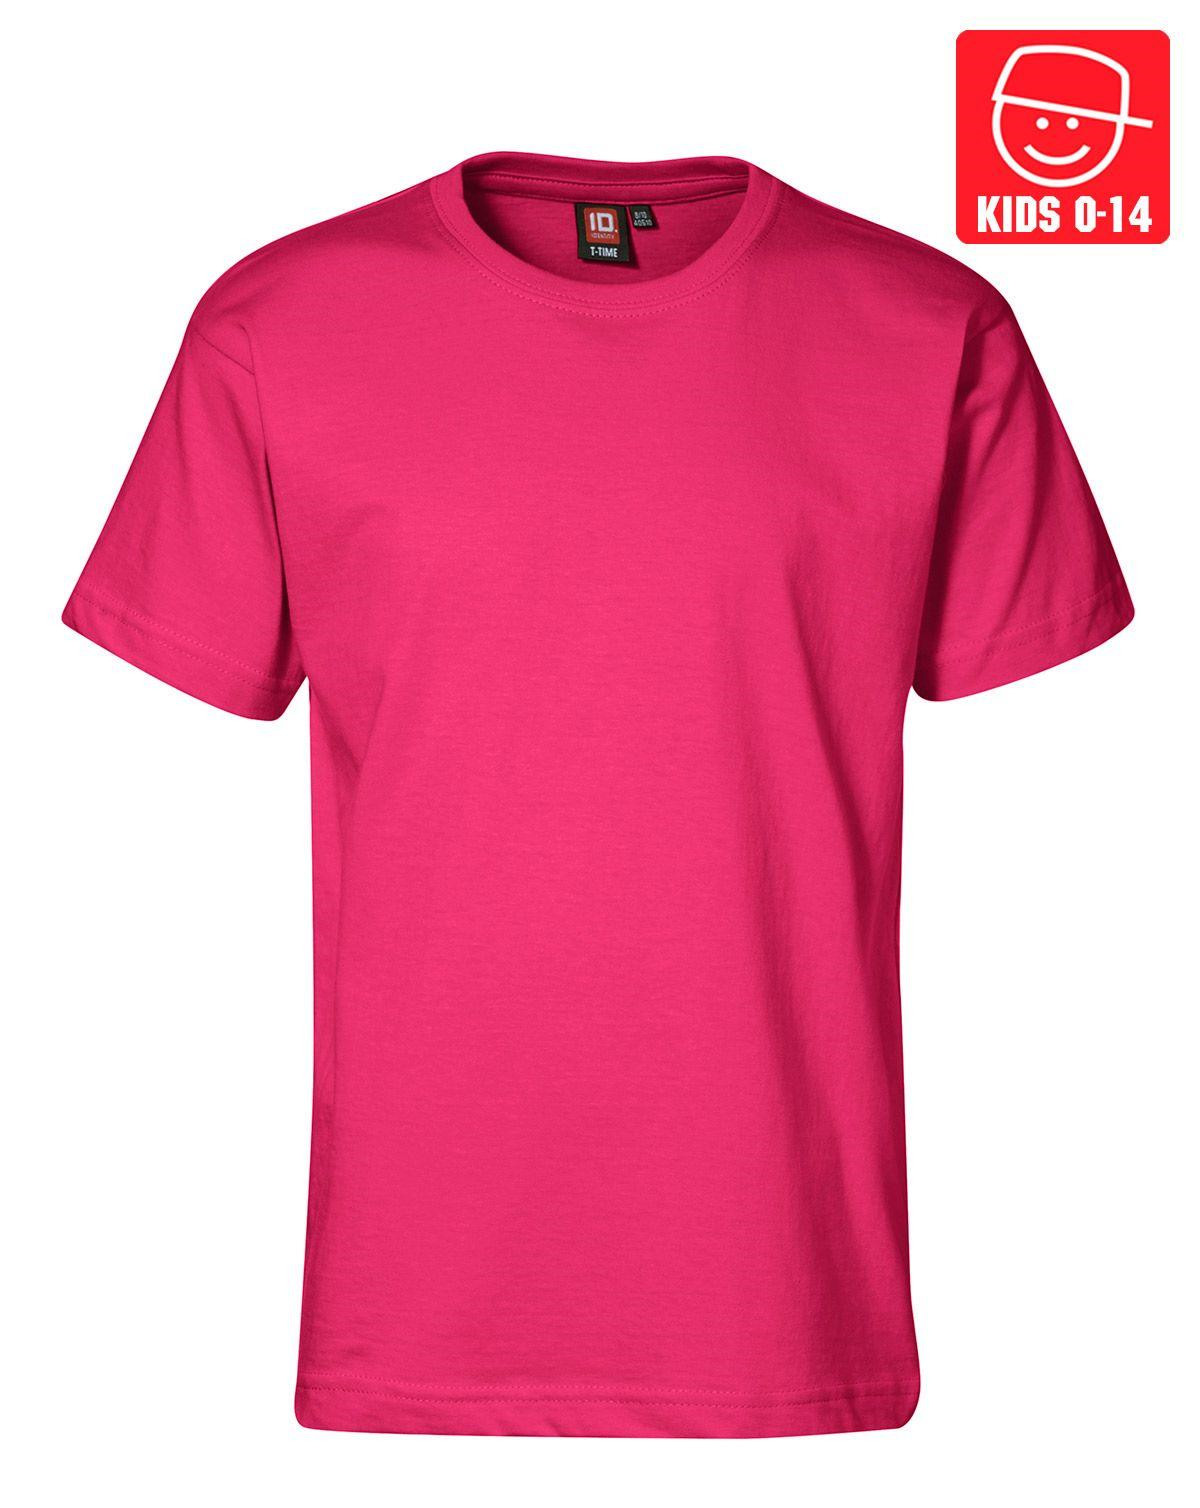 Image of   ID T-TIME T-shirt (Pink, 122)